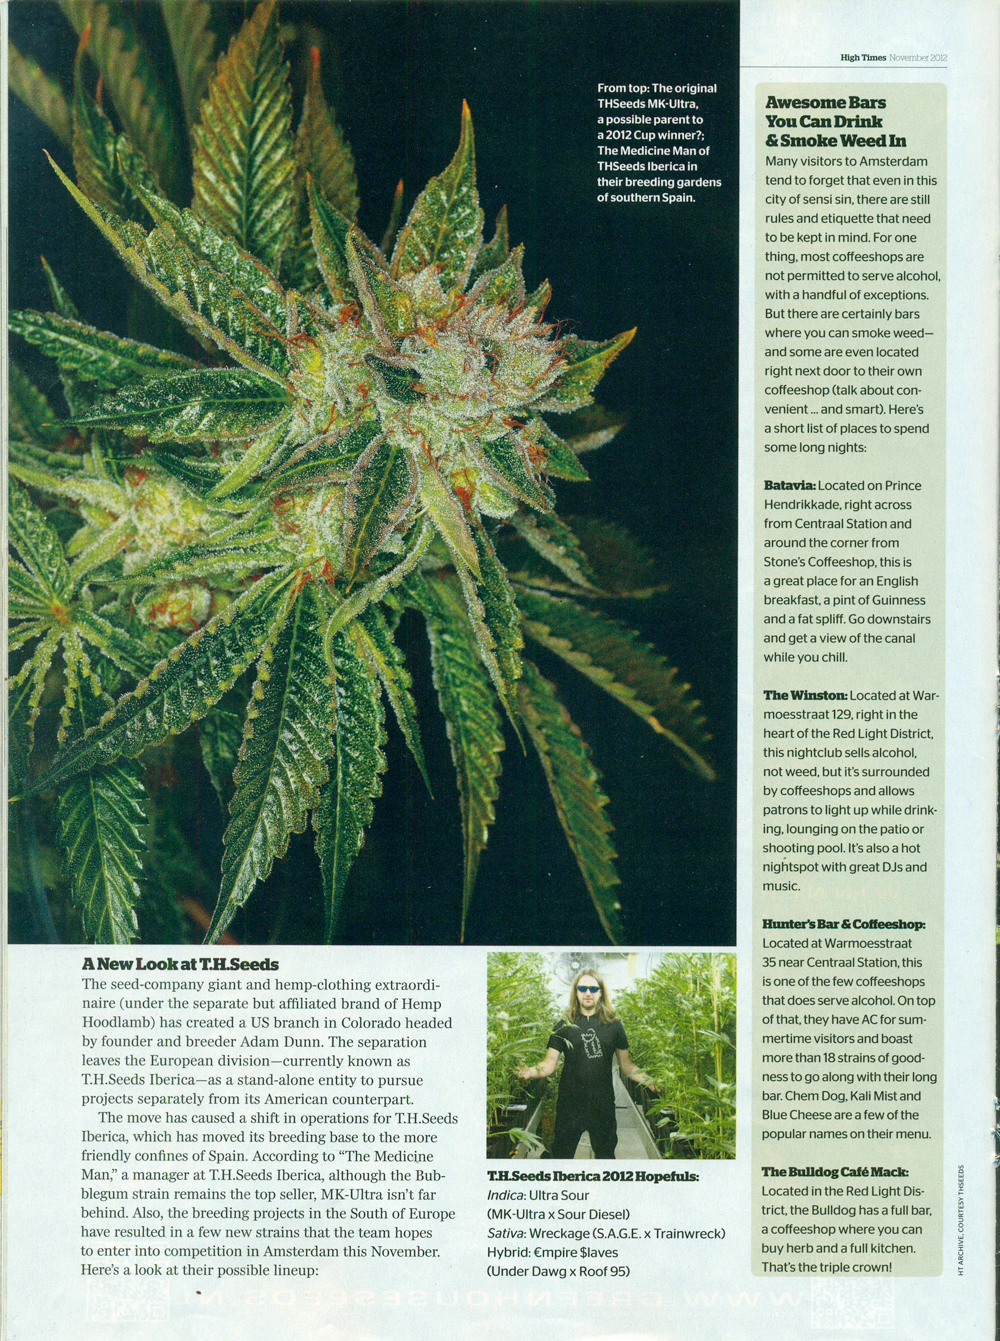 Hightimes-the-tech-issue-2012-story.jpg